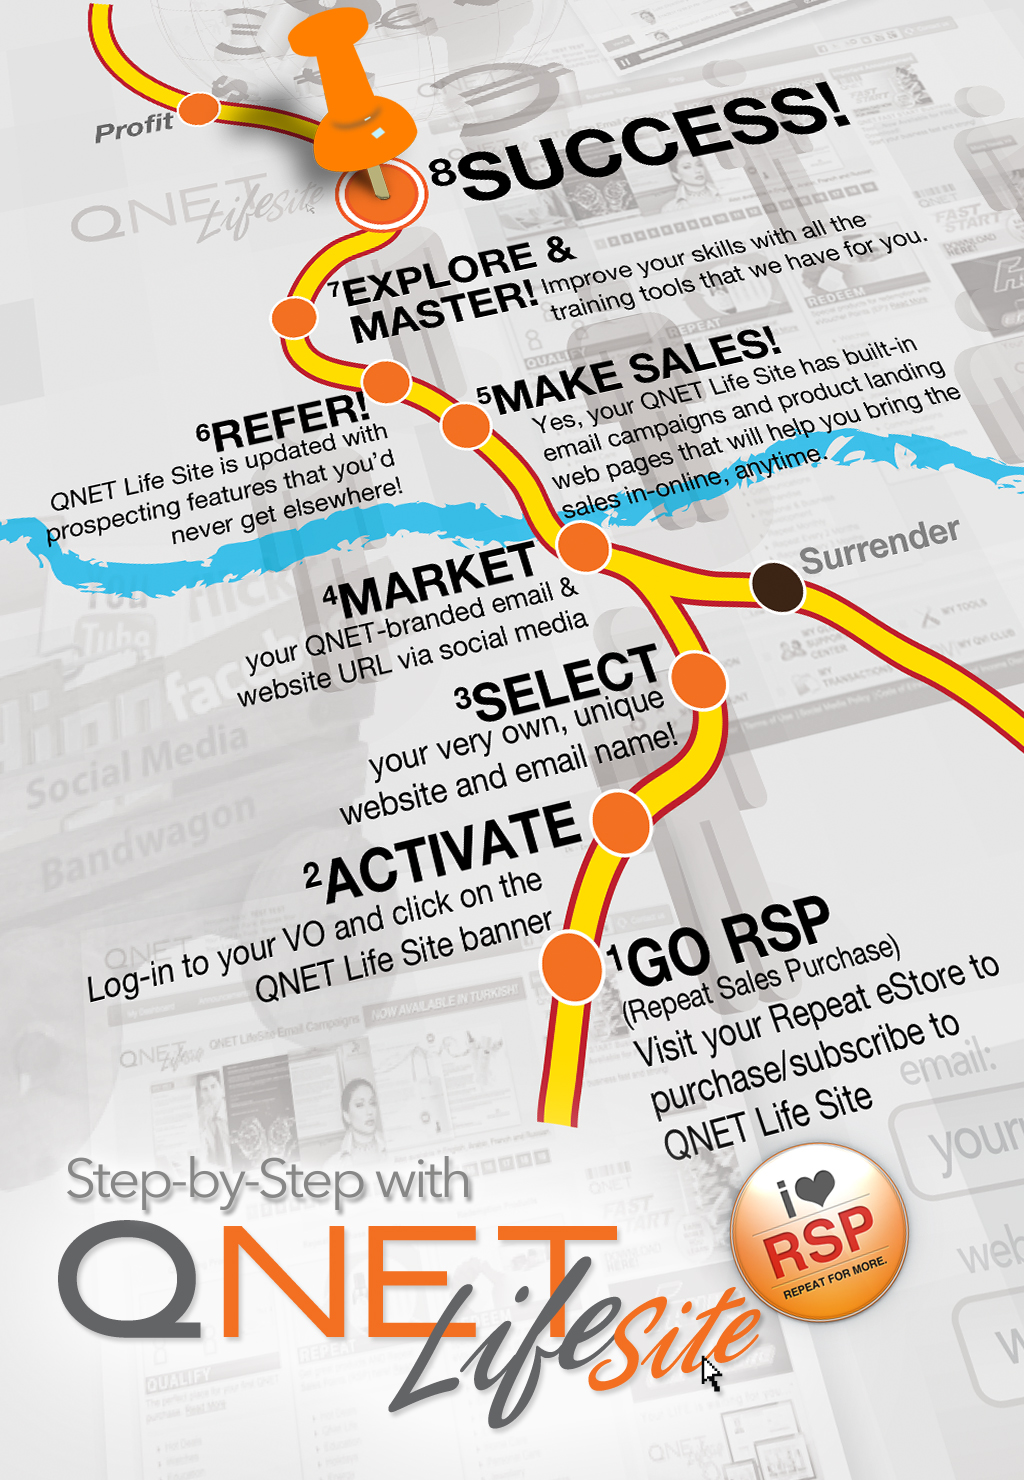 QNET.Life.Site.Infographic